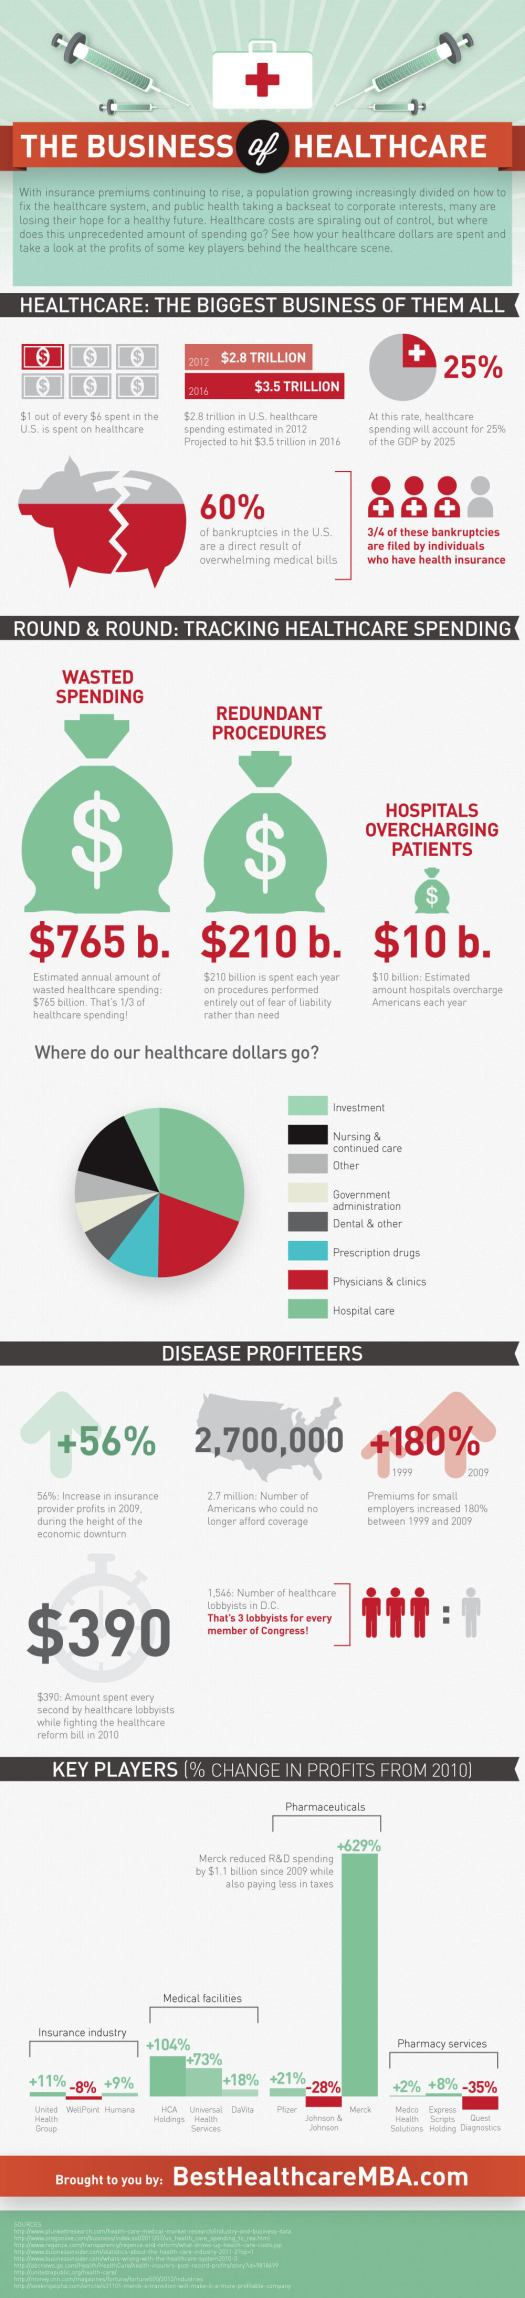 business-of-healthcare1 Healthcare is Big Business: (And the Most Wasteful) [INFOGRAPHIC]